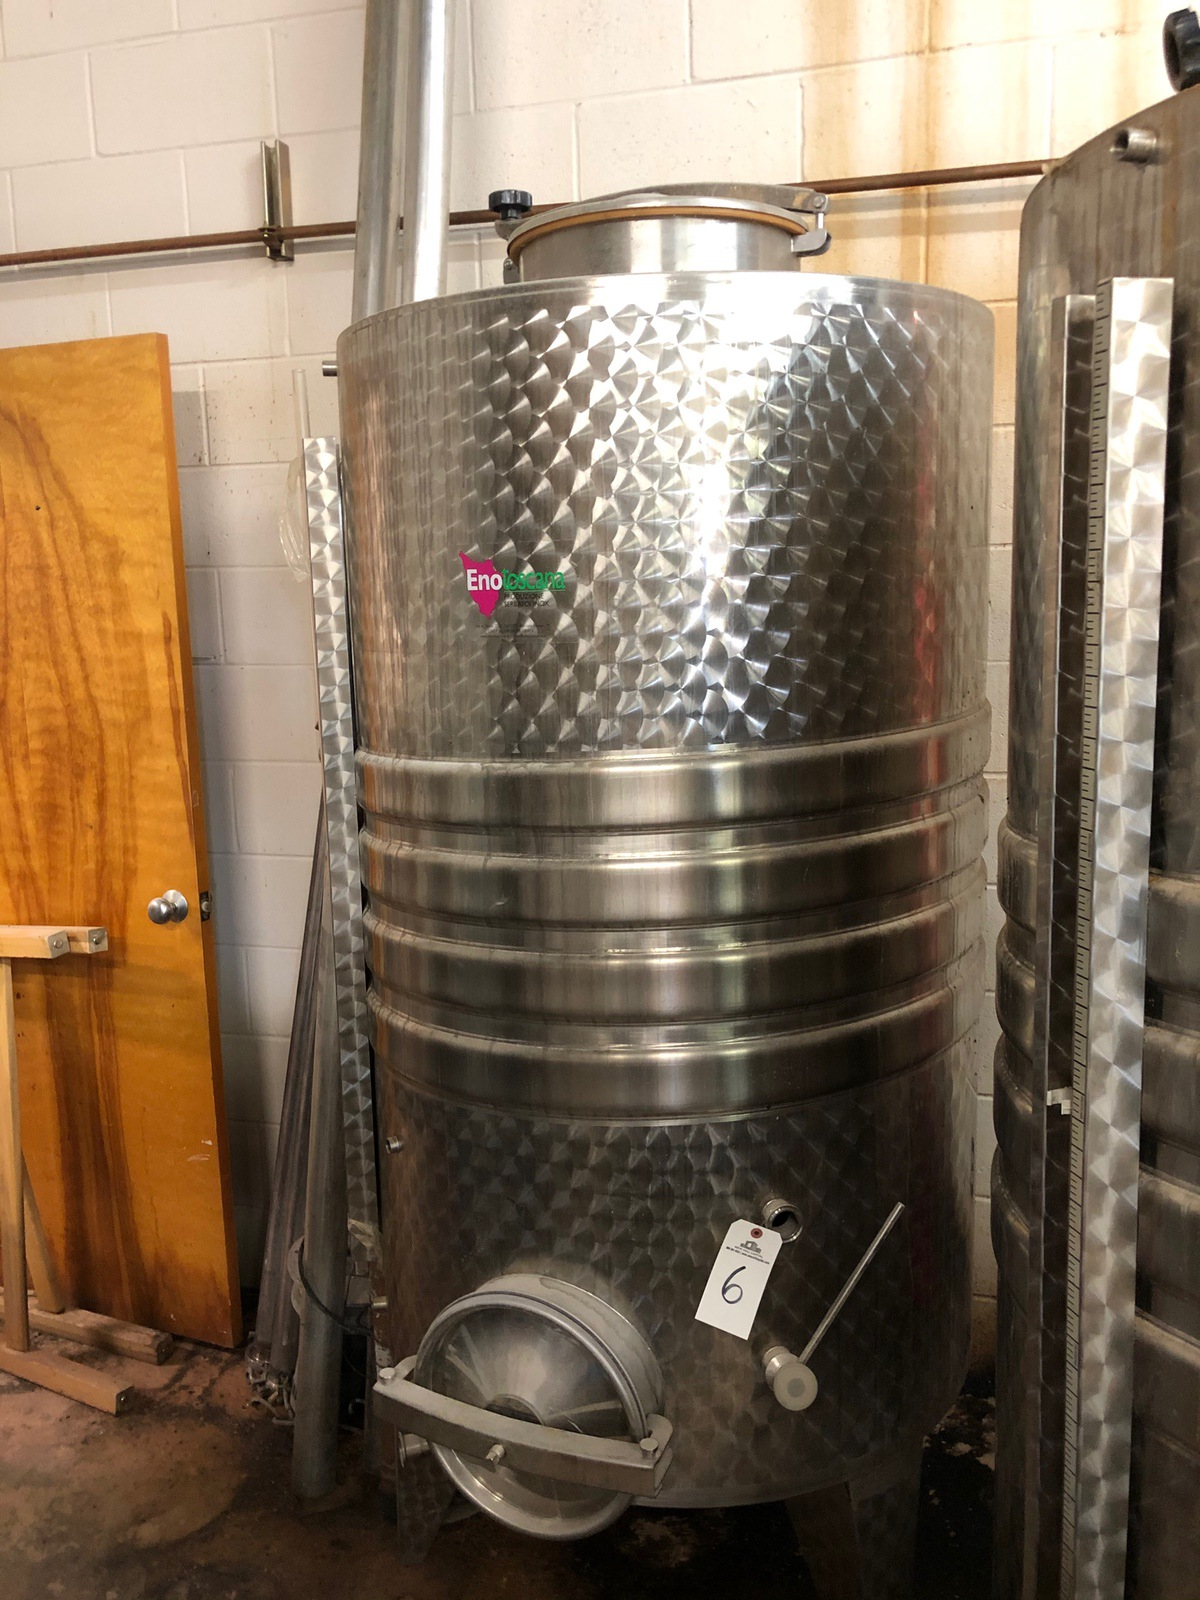 Lot 6 - 2008 EnoToscana Single Wall Tank, Cooling Jacket Section, Top and Sid | Sub to Bulk | Rig Fee: $250